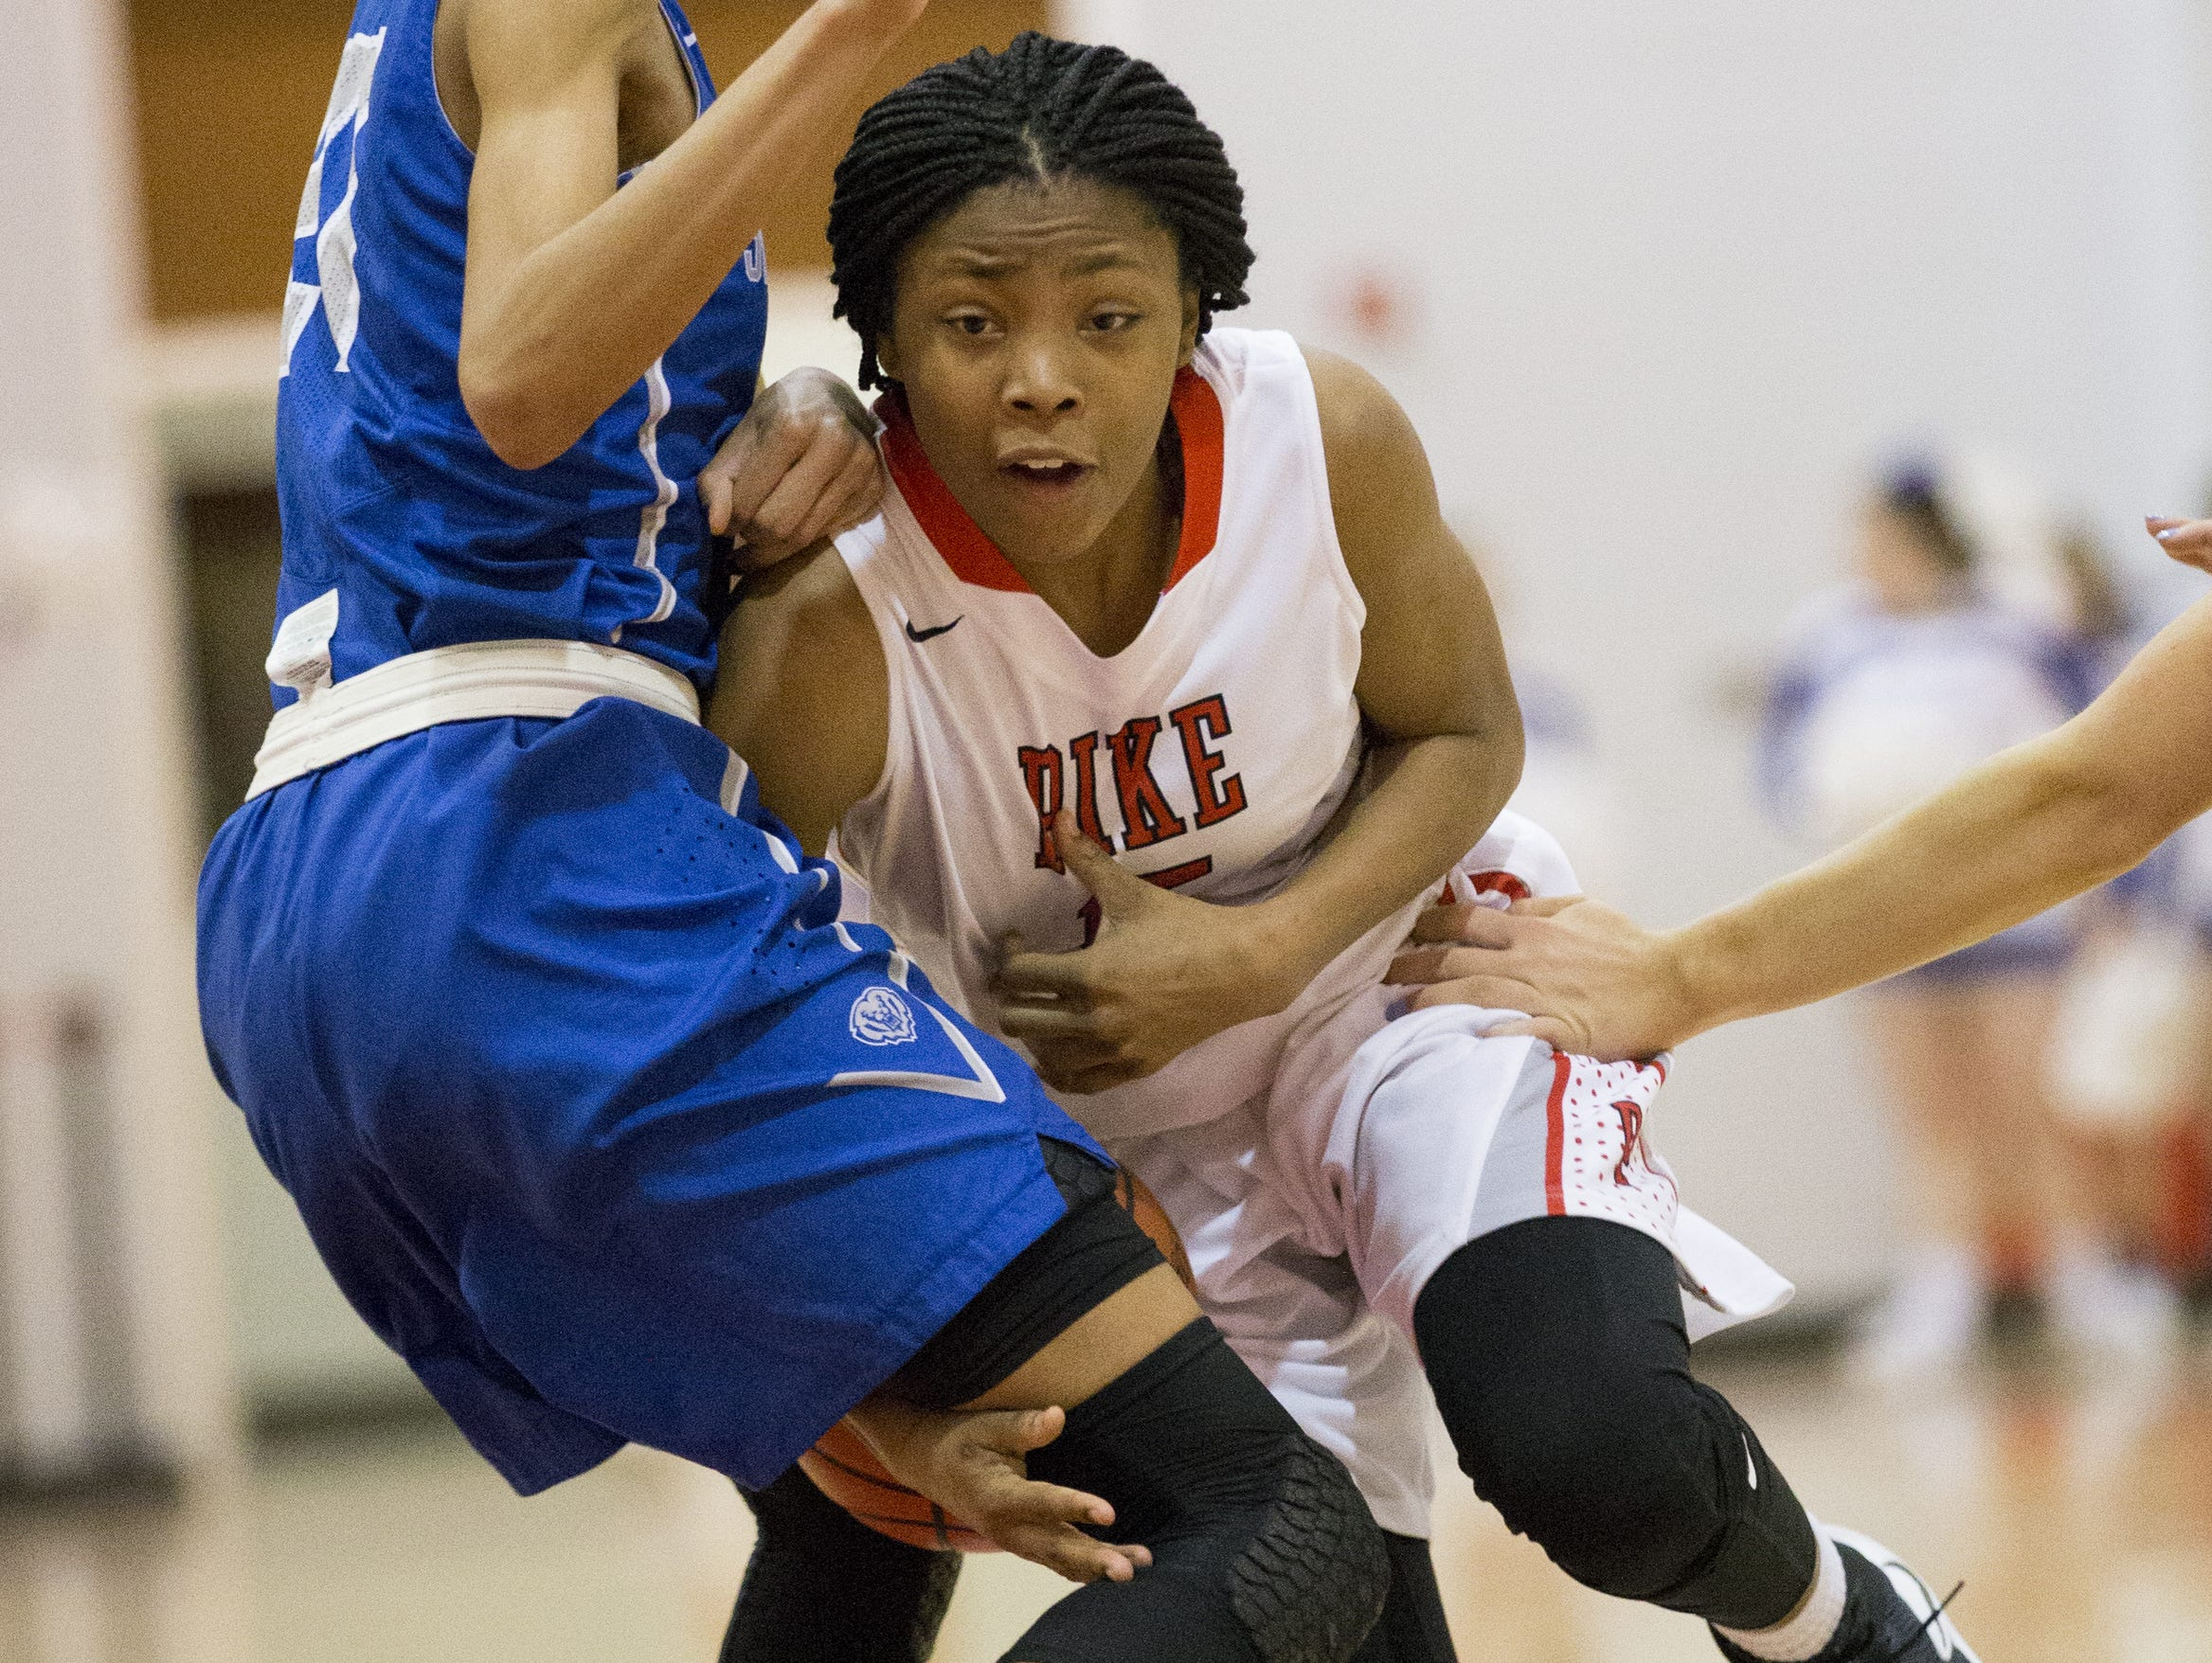 Angel Baker of Pike High School, loses a ball as she collides with a Hamilton Southeastern High School player, at Pike High School, girls basketball, Indianapolis, Tuesday, January 24, 2017. Pike won 62-58.